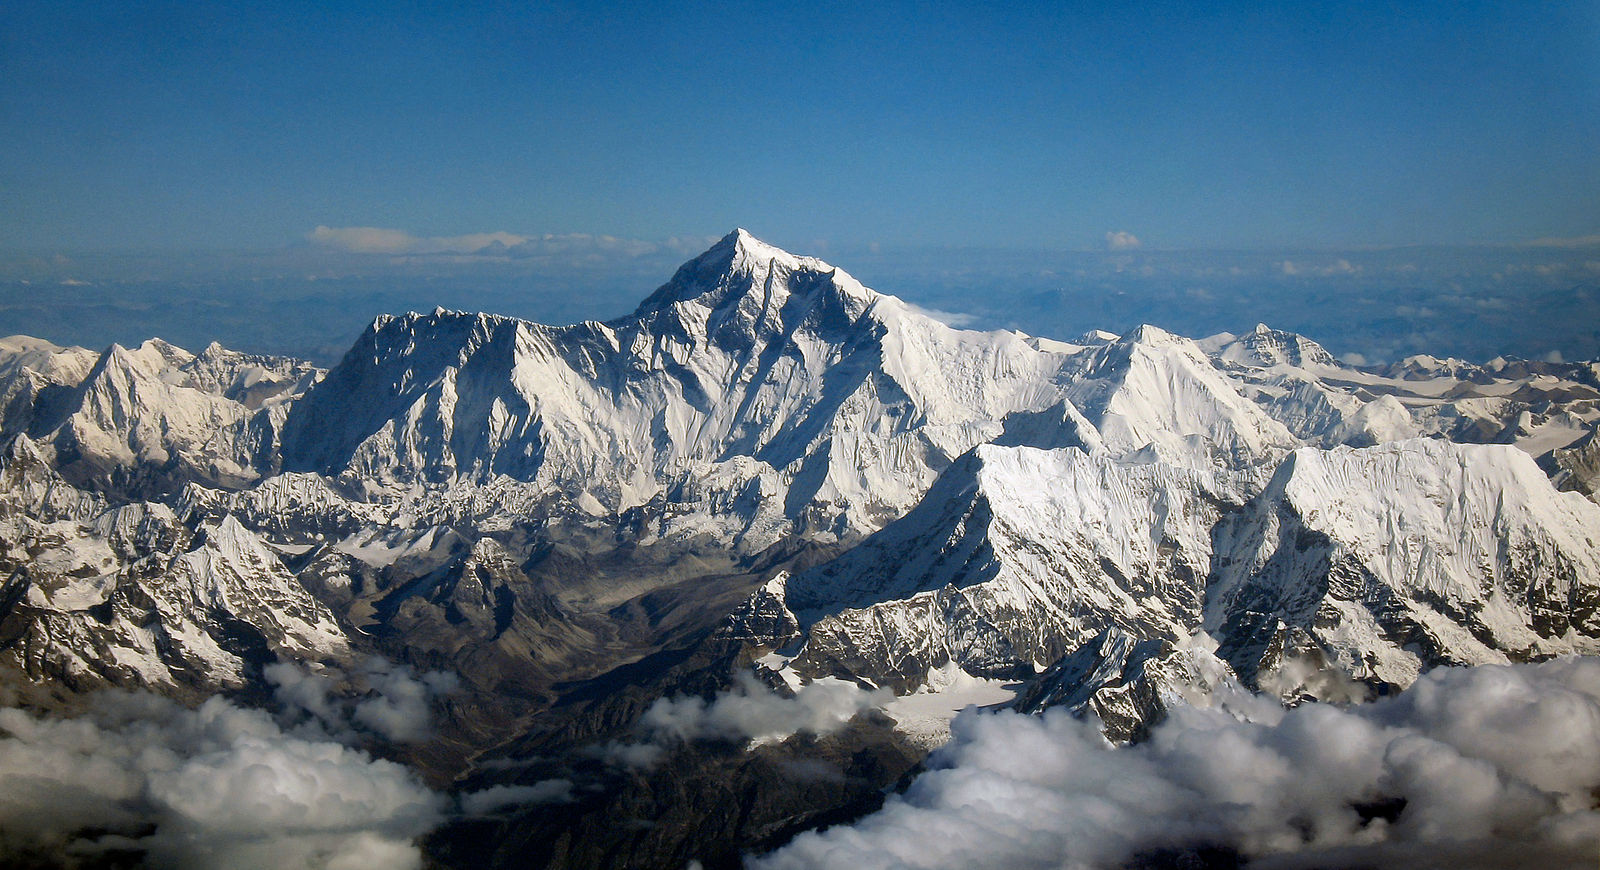 A photograph of Mount Everest; the mountain is covered in snow and imposing.